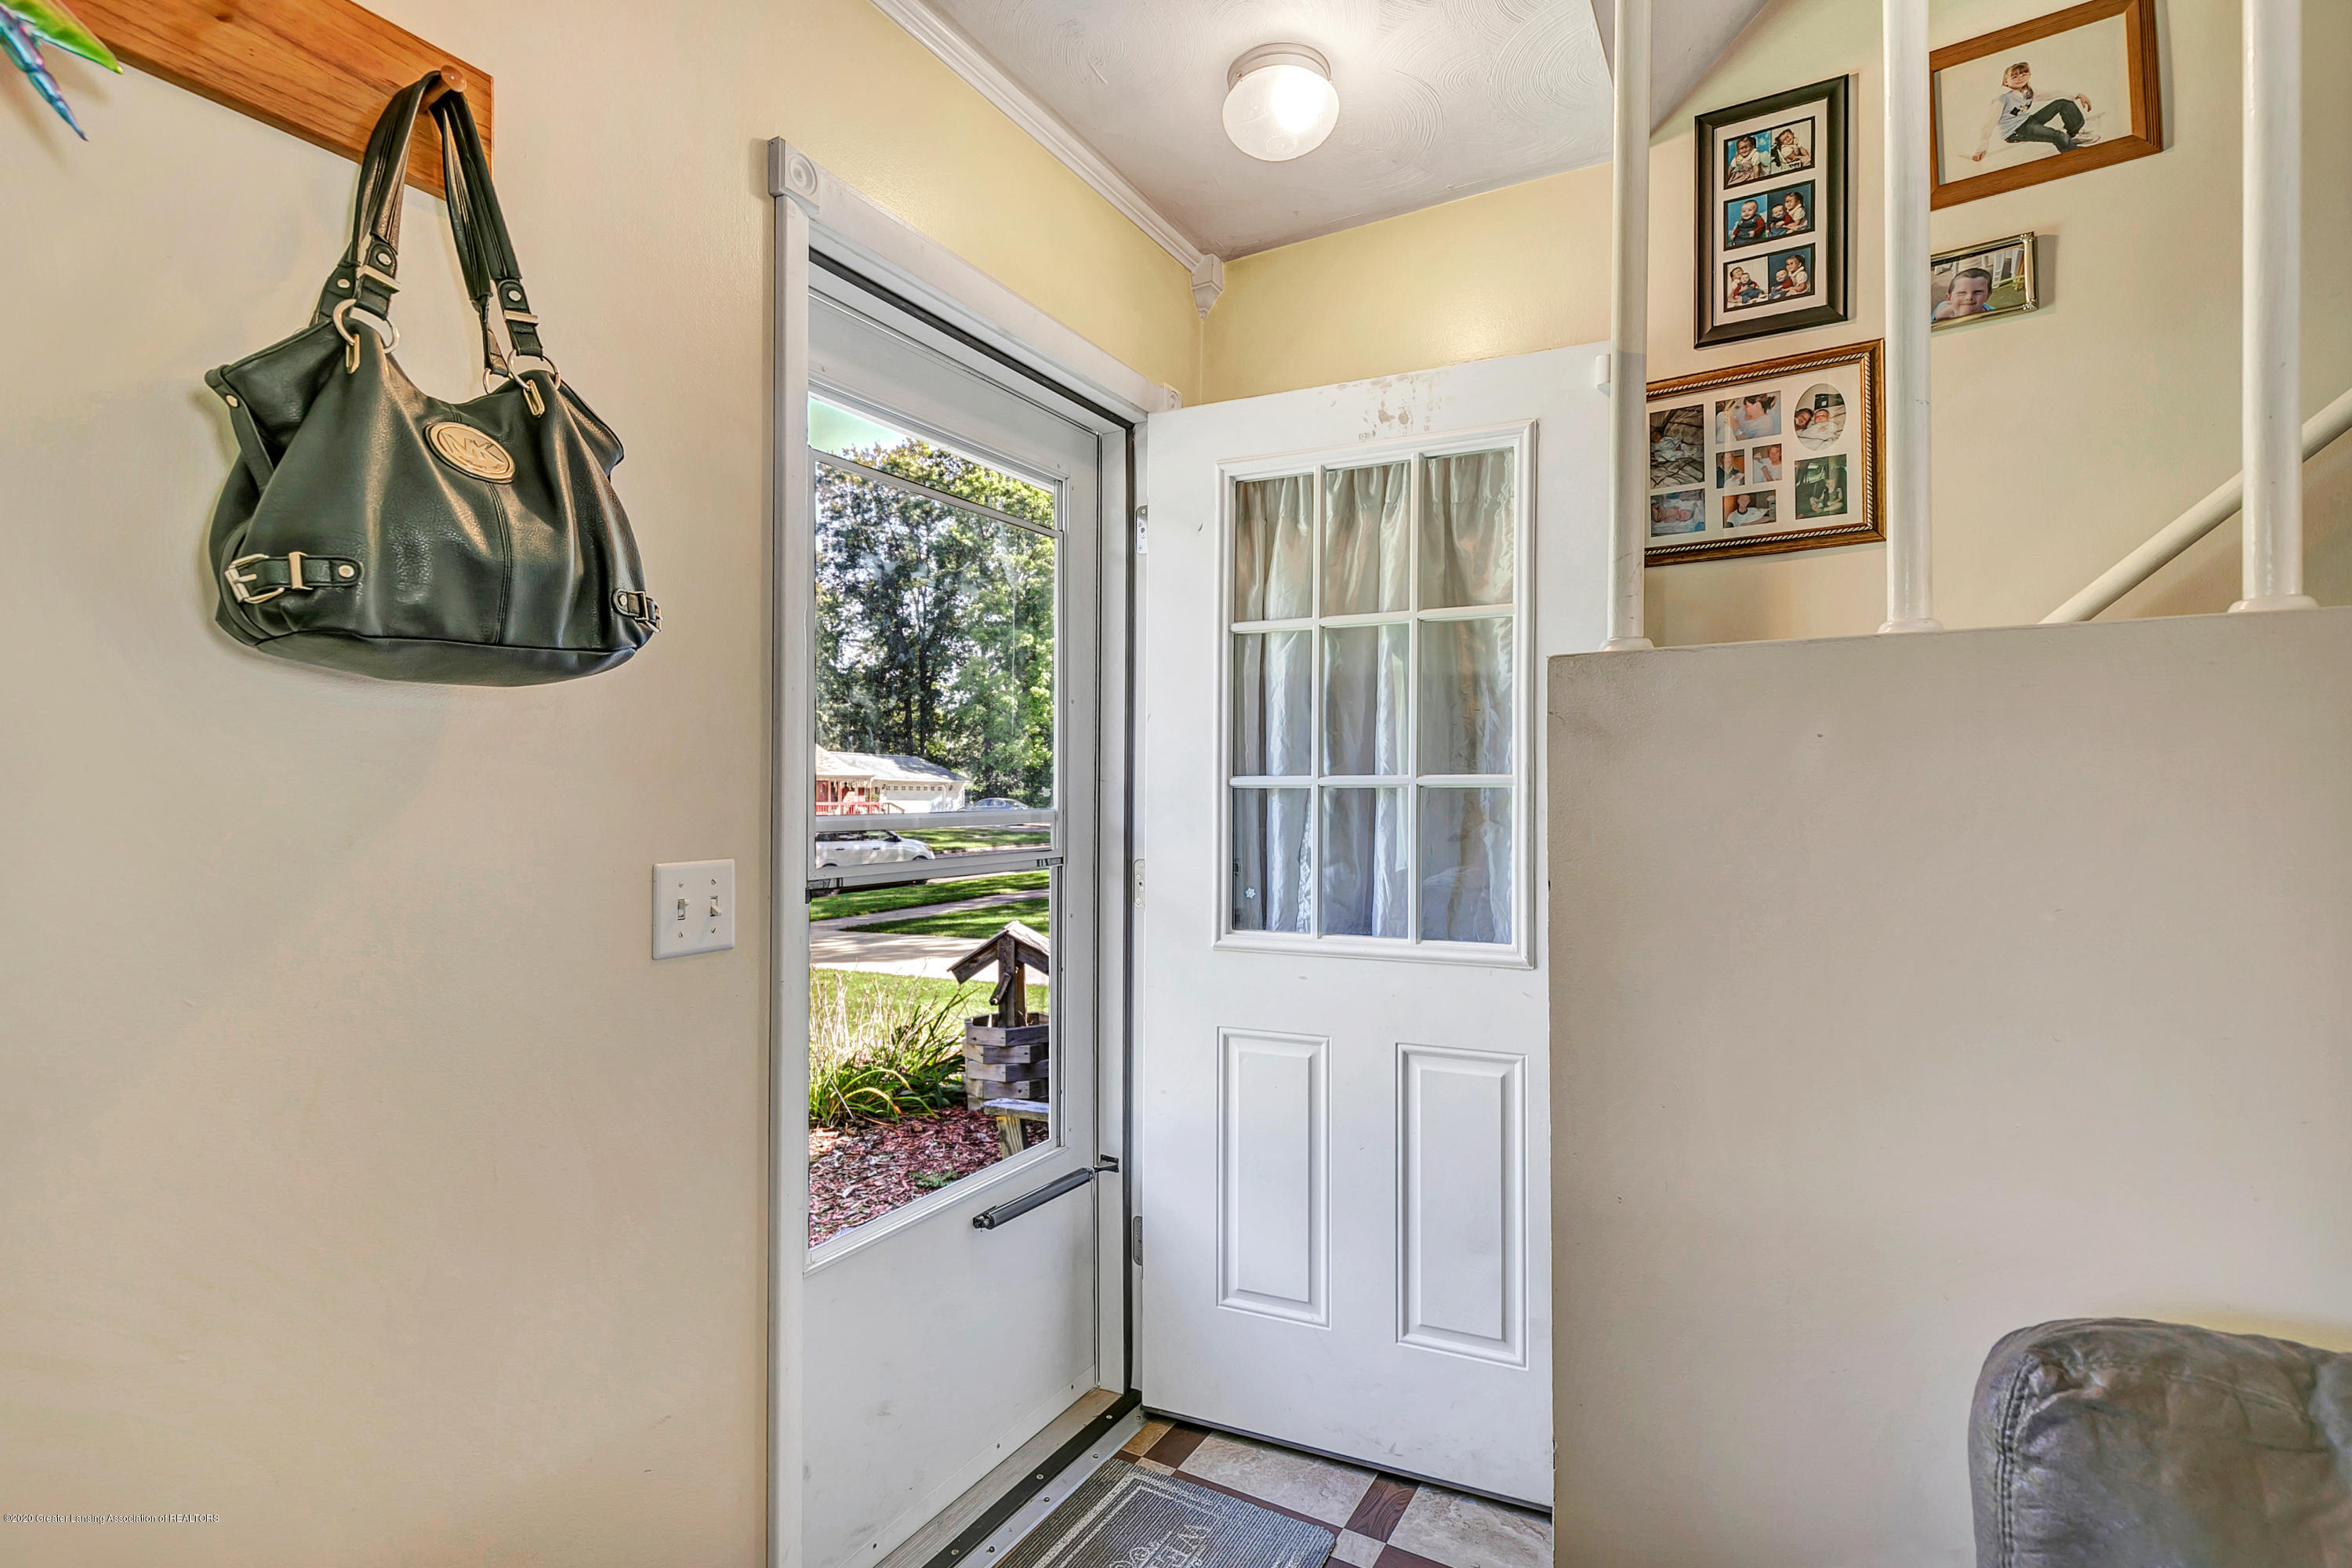 2844 S Deerfield Ave - 9I3A2577 - 3